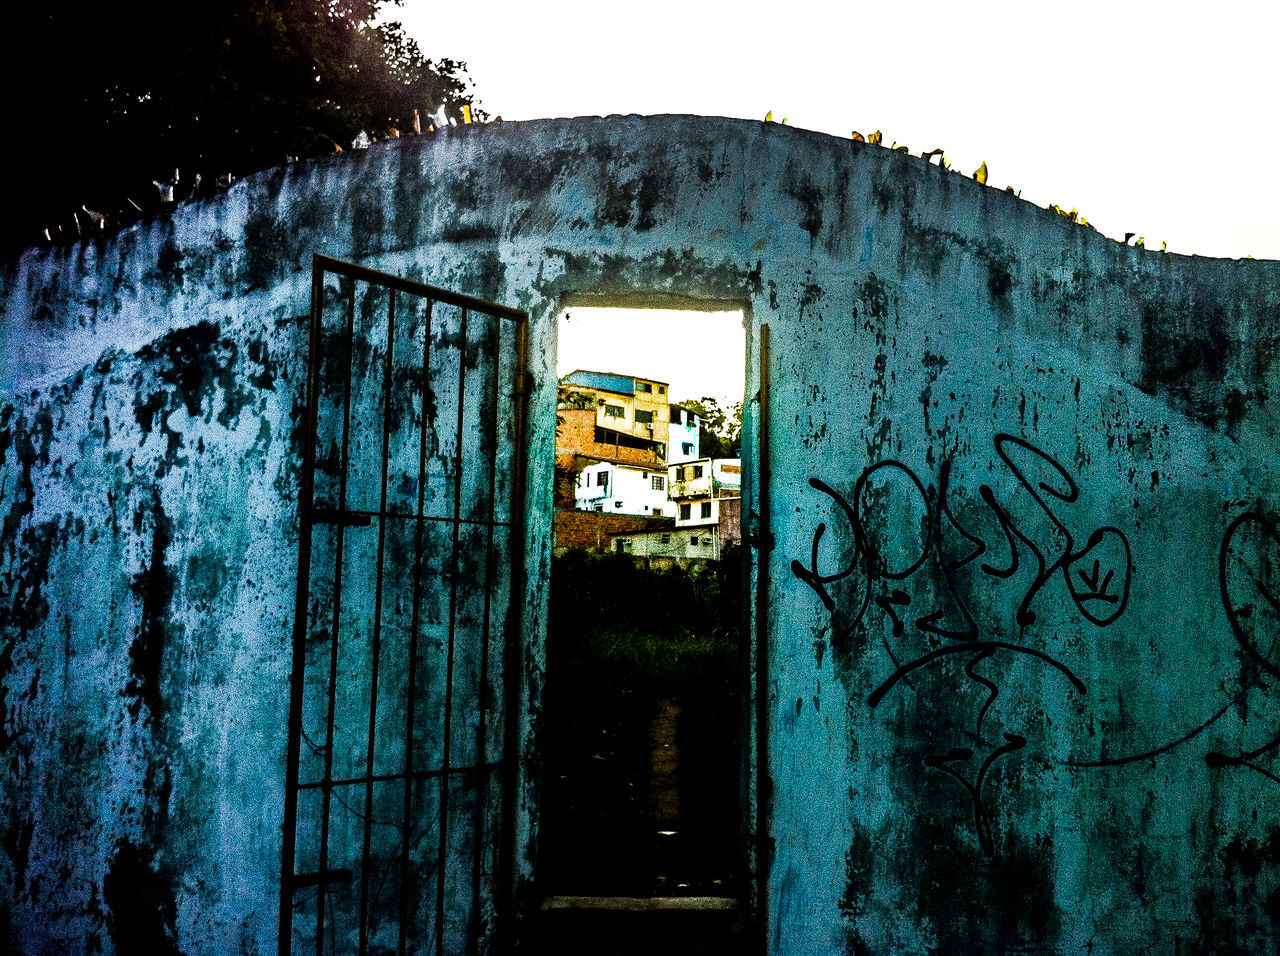 Abandoned Adventure Architecture Bad Condition Brick Wall Building Exterior Built Structure Closed Damaged Day Deterioration Door Favela Graffiti Iphone4 IPhoneography Obsolete Old Ruined Text Wall Wall - Building Feature Wanderlust Wanderlust Wednesday Window